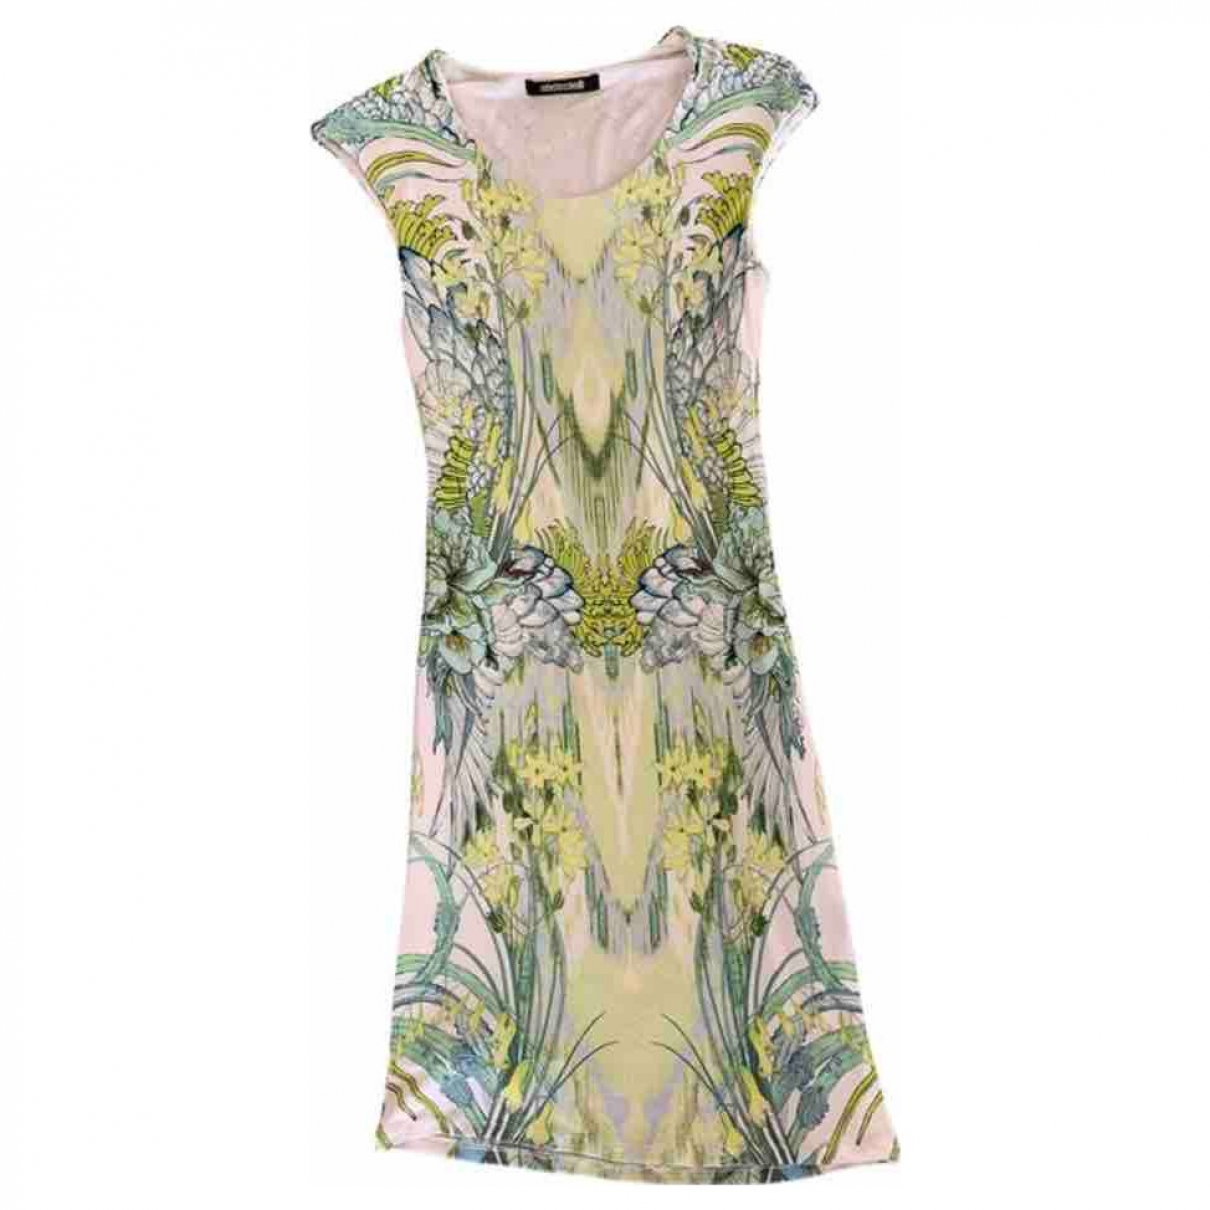 Roberto Cavalli \N Green dress for Women 40 FR